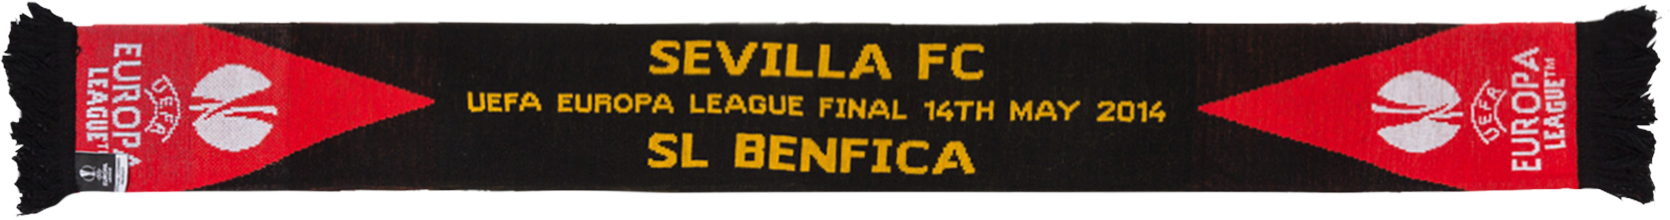 Sevilla-FC-SL-Benefica-TORINO-UEFA-Europa-League-FINAL